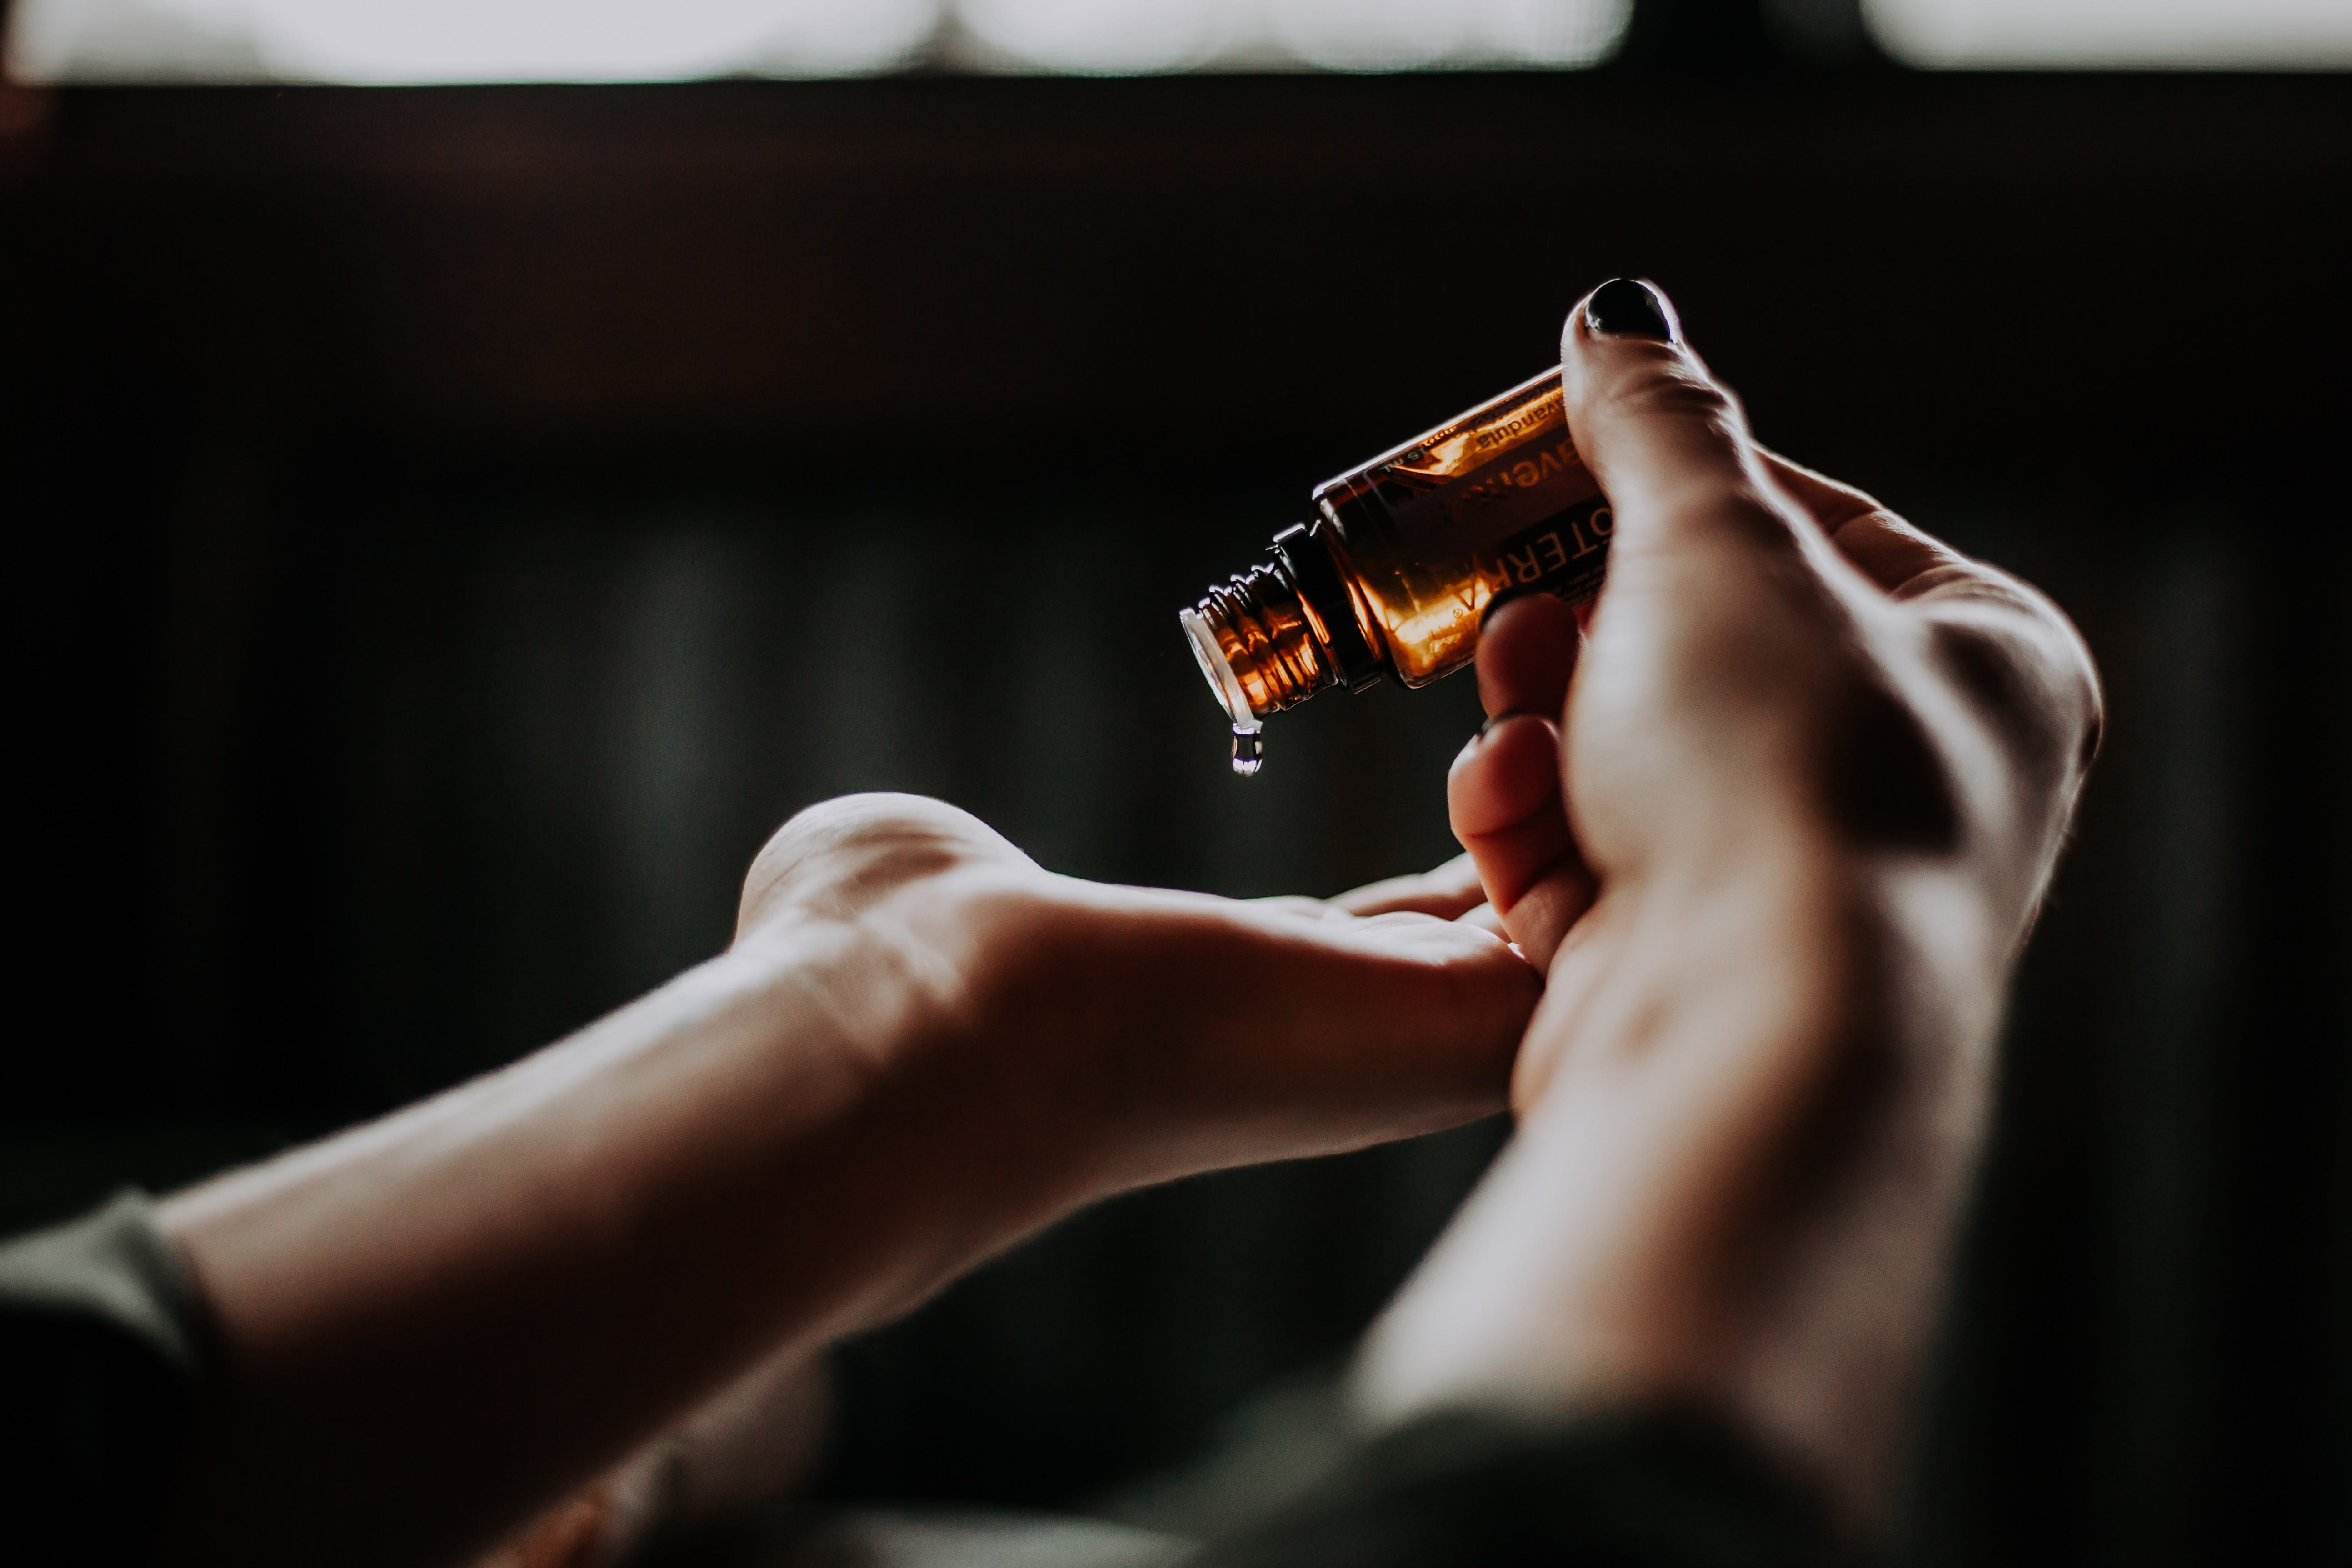 Woman holding amber glass bottle and pouring a drop of oil into her open palm; image by Christin Hume, via Unsplash.com.